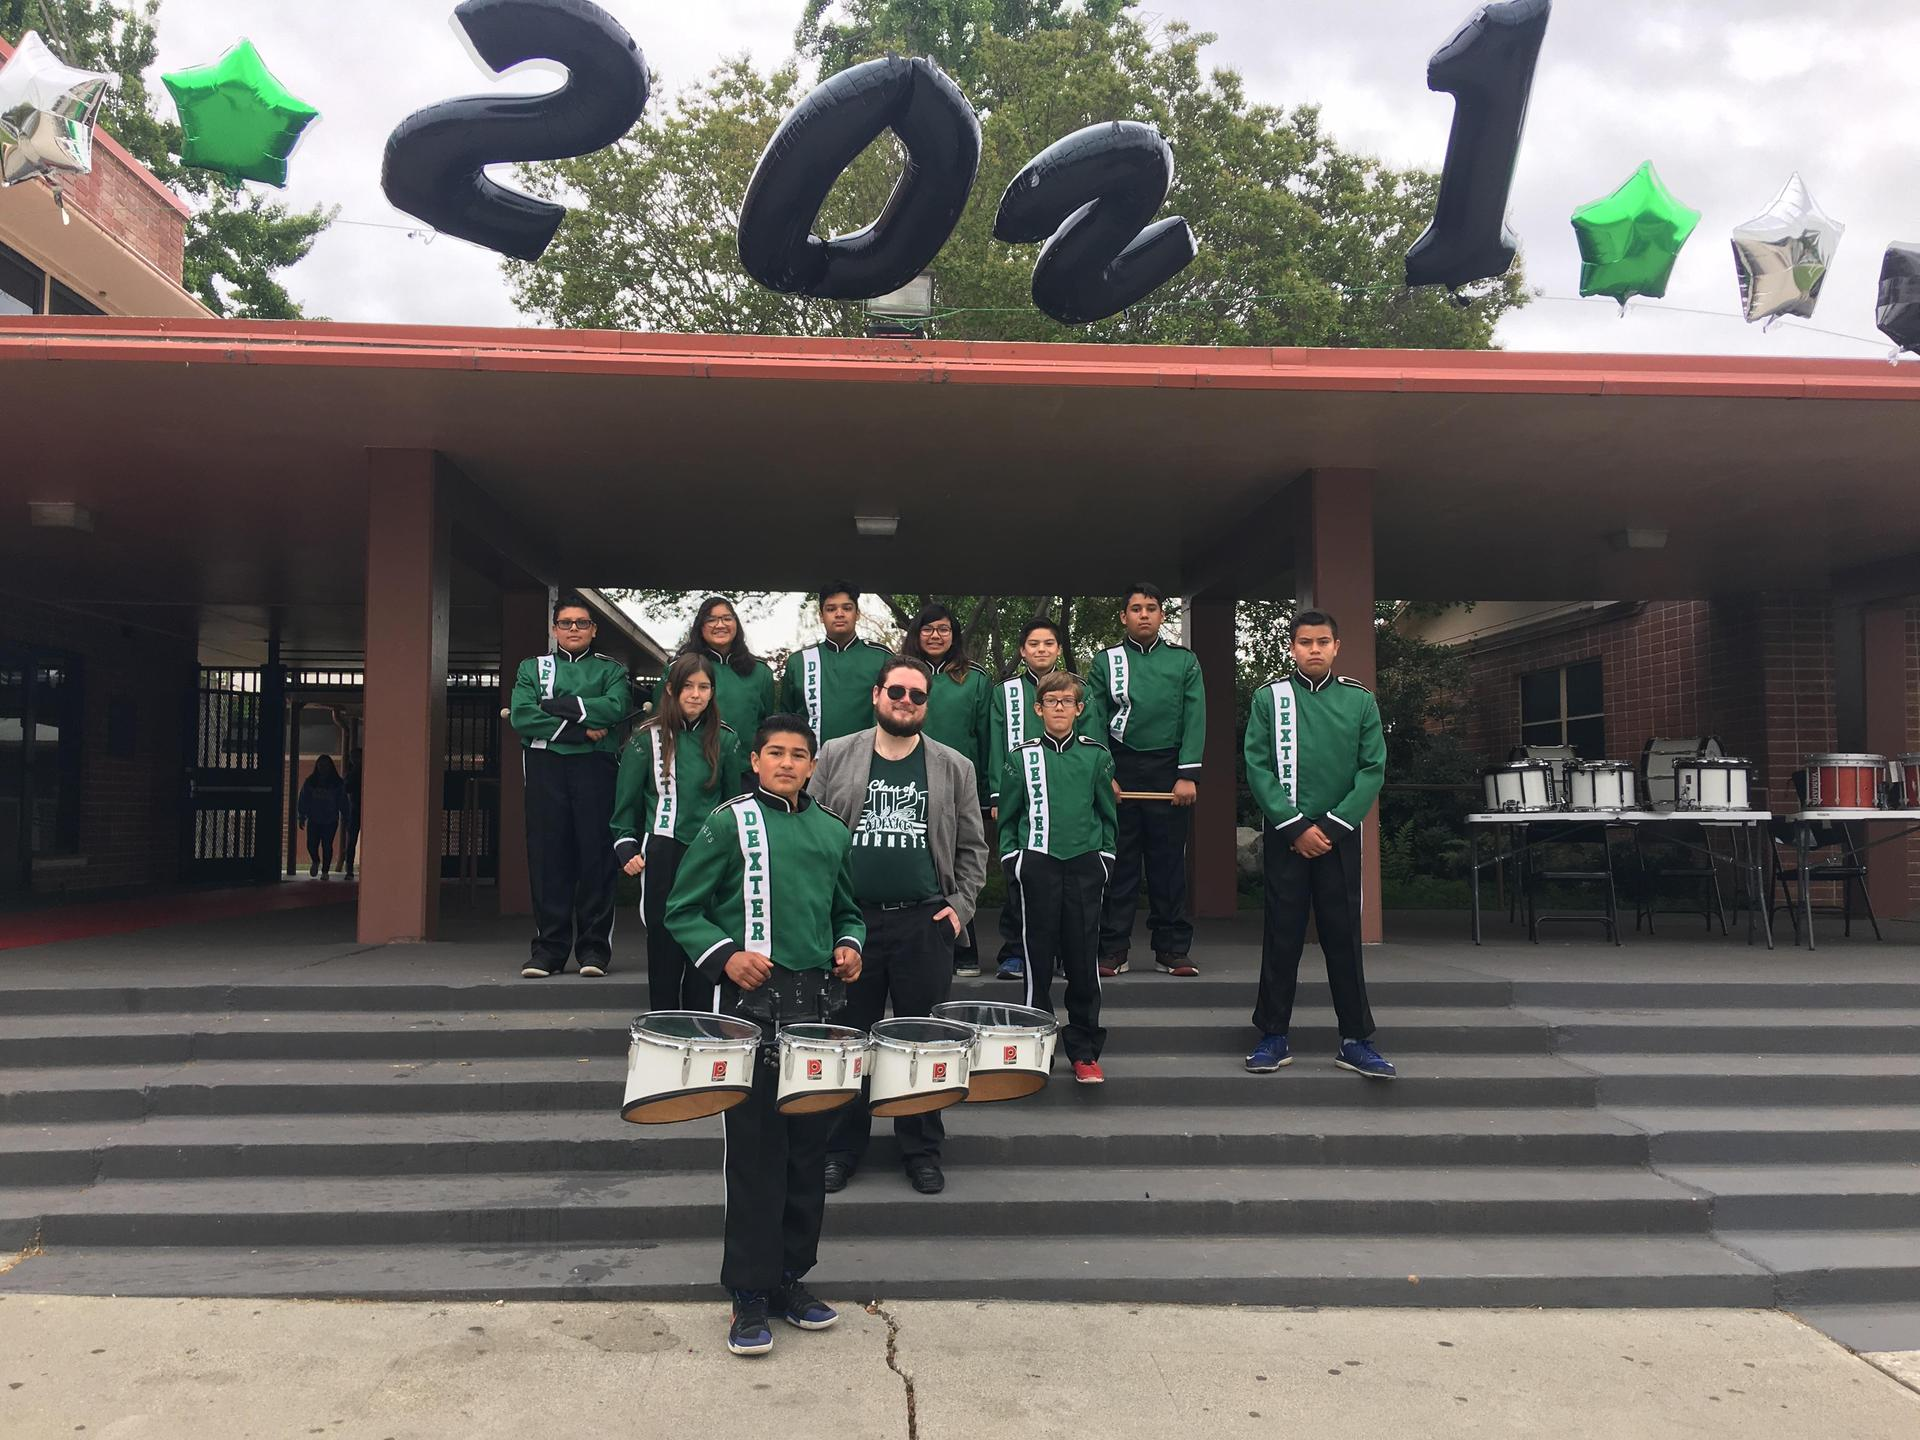 Mr. Parreco and the Dexter Drumline